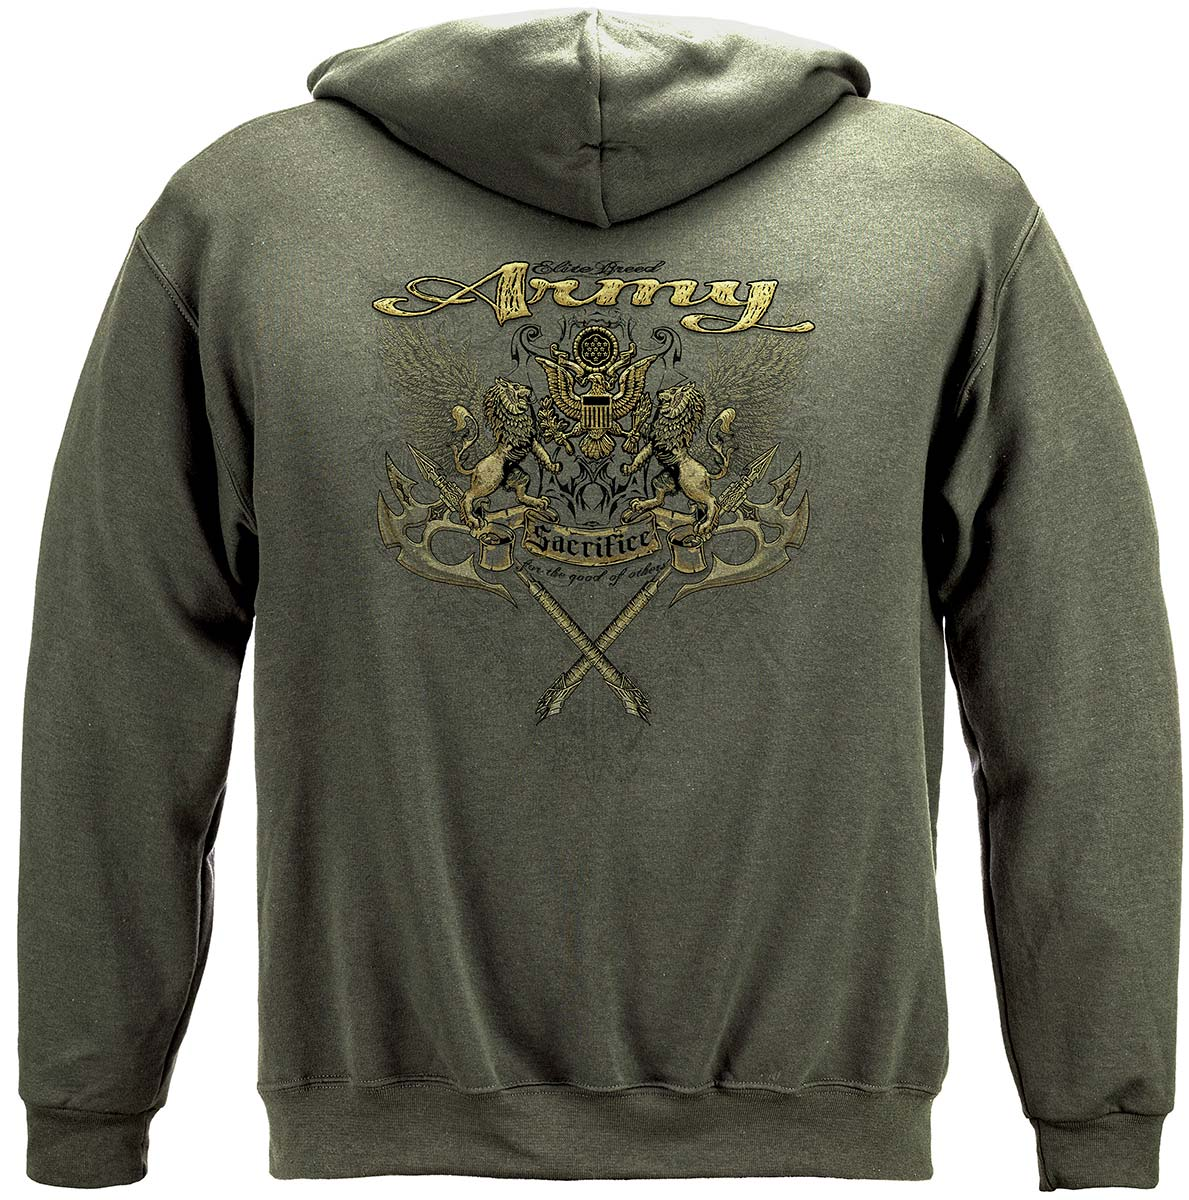 Army Lions Elite Breed Premium Hooded Sweat Shirt